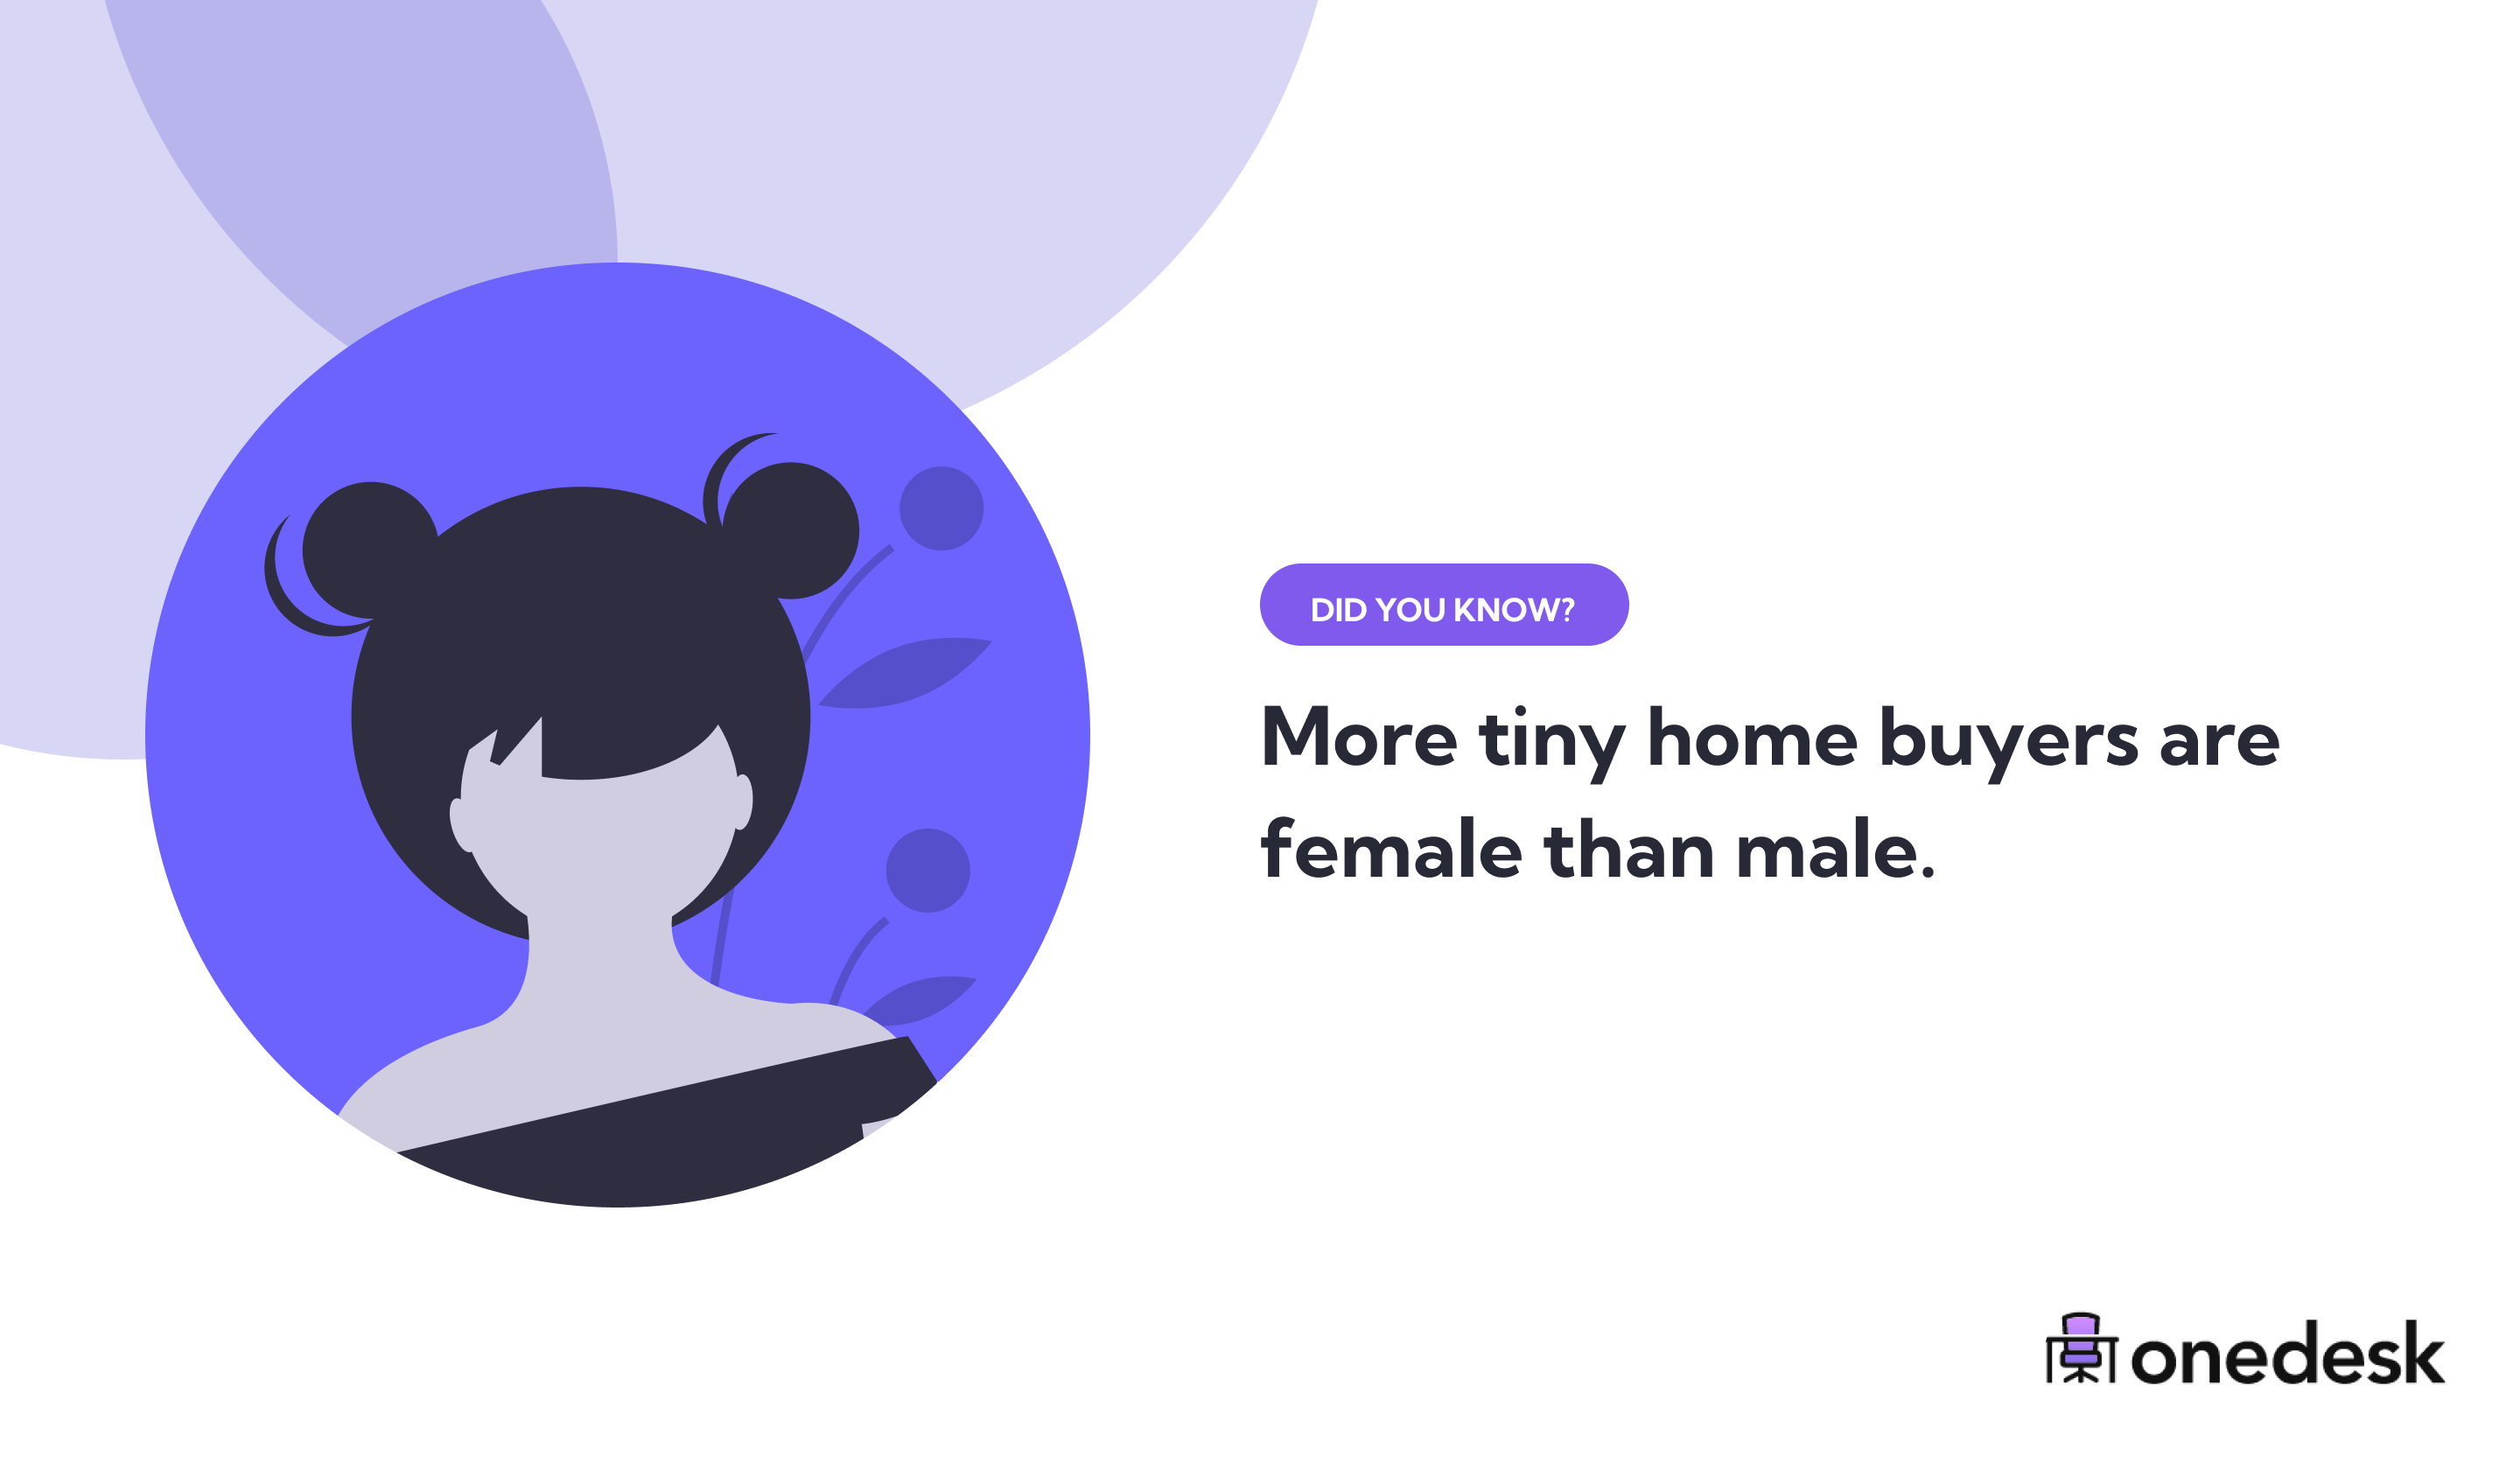 more tiny home buyers are female